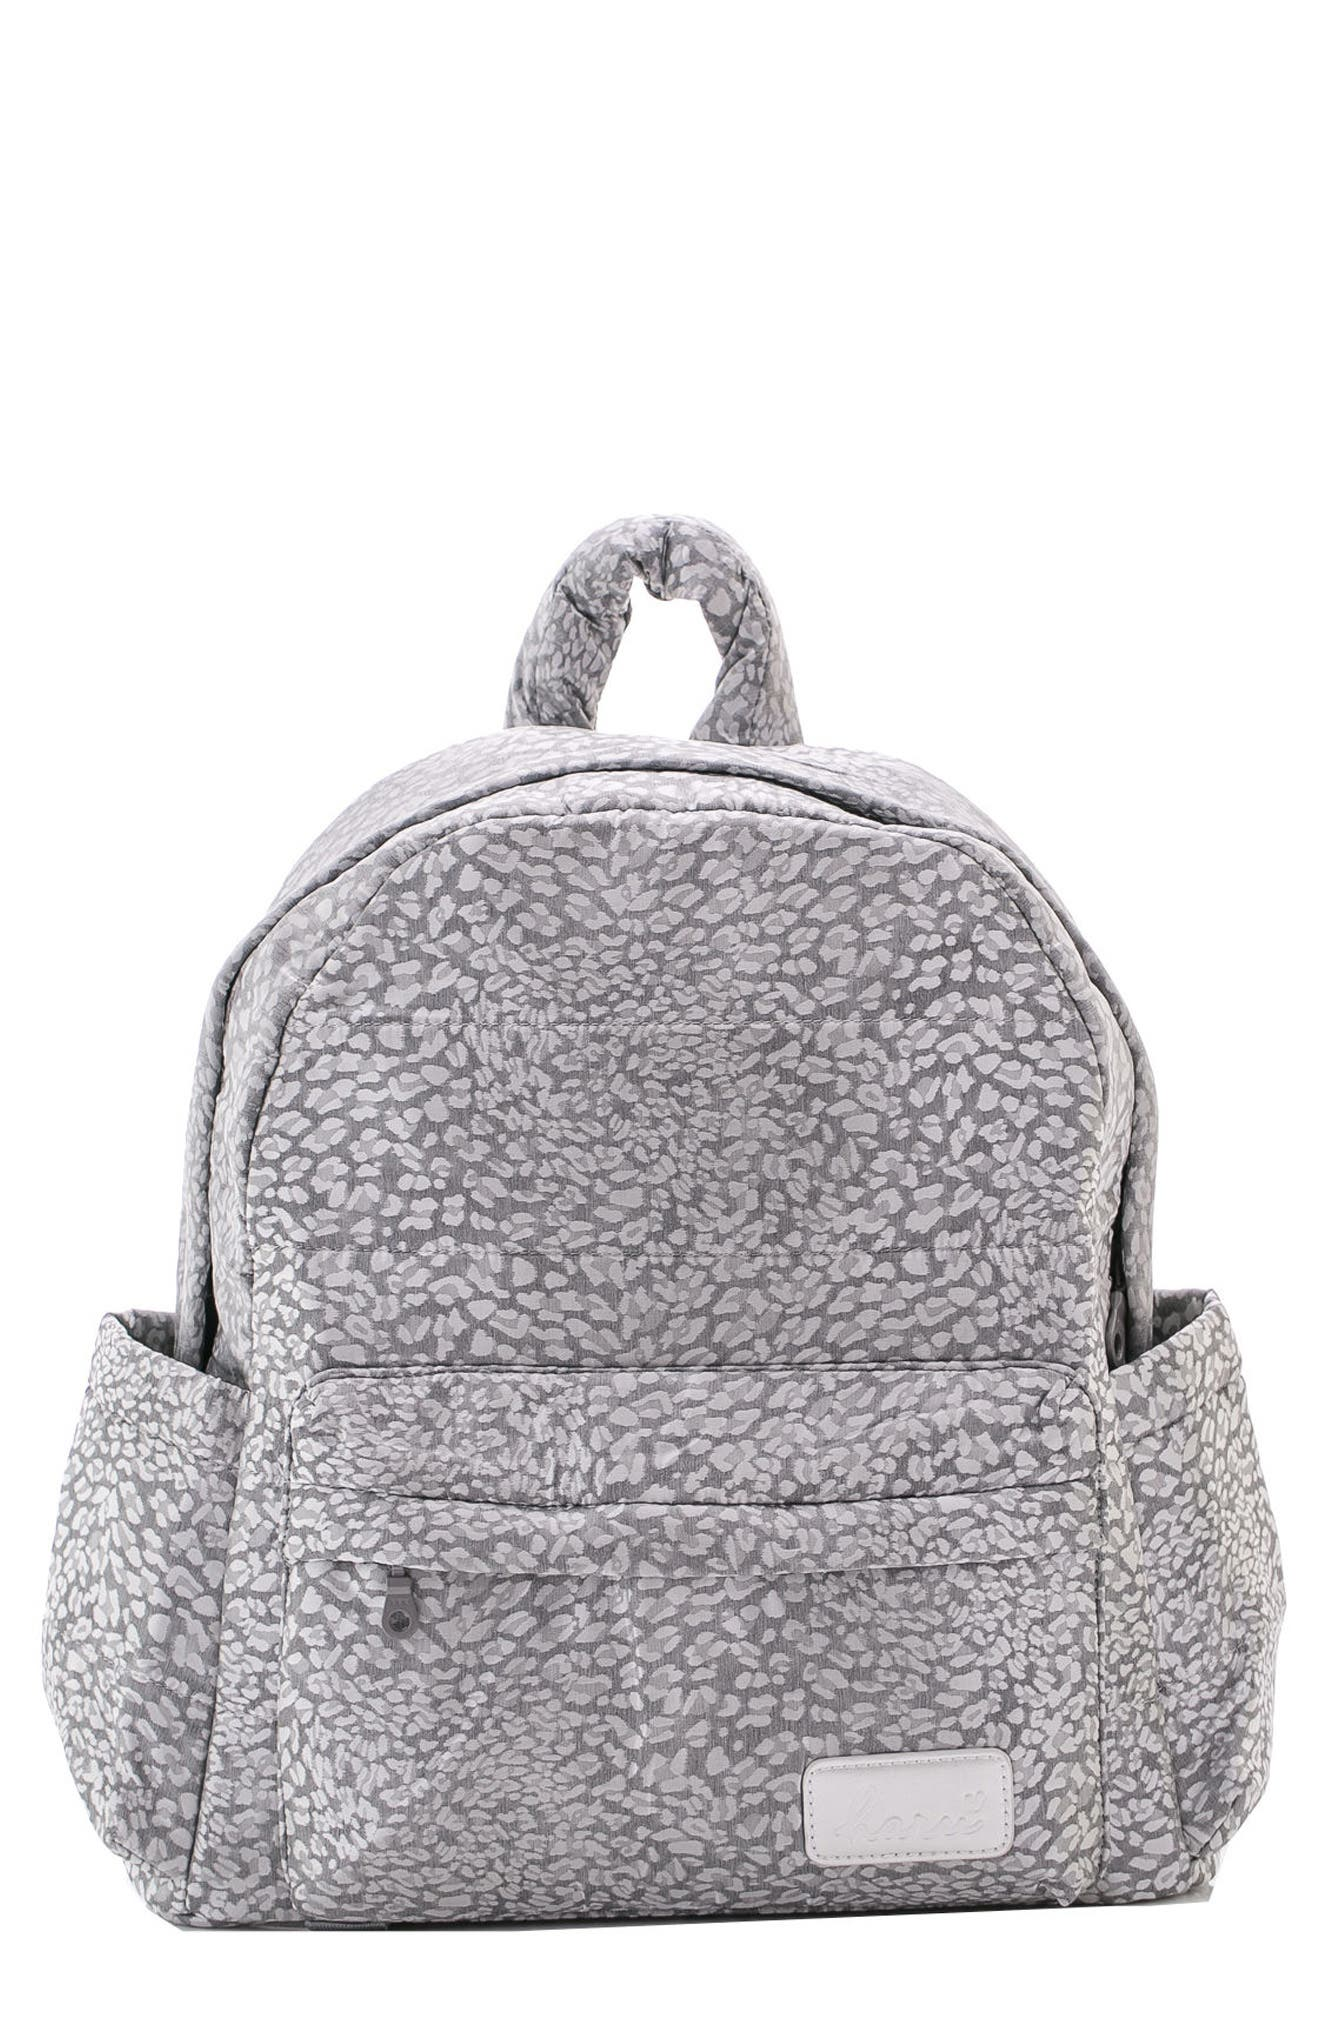 Print Water Repellent Diaper Backpack,                         Main,                         color, SILVER LEOPARD